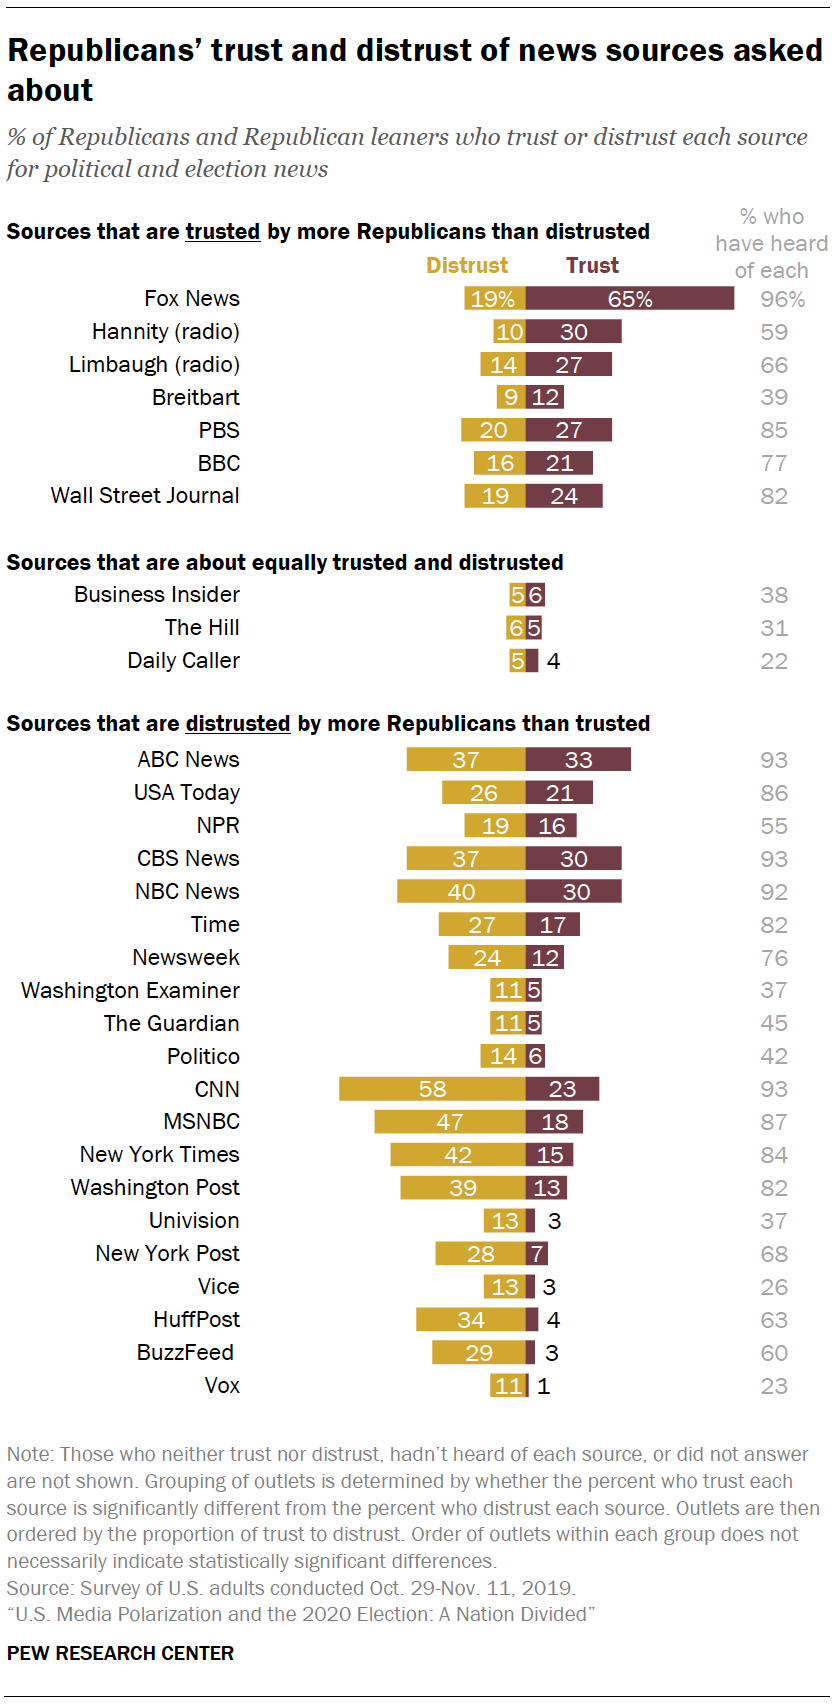 Republicans trust and distrust of news sources asked about